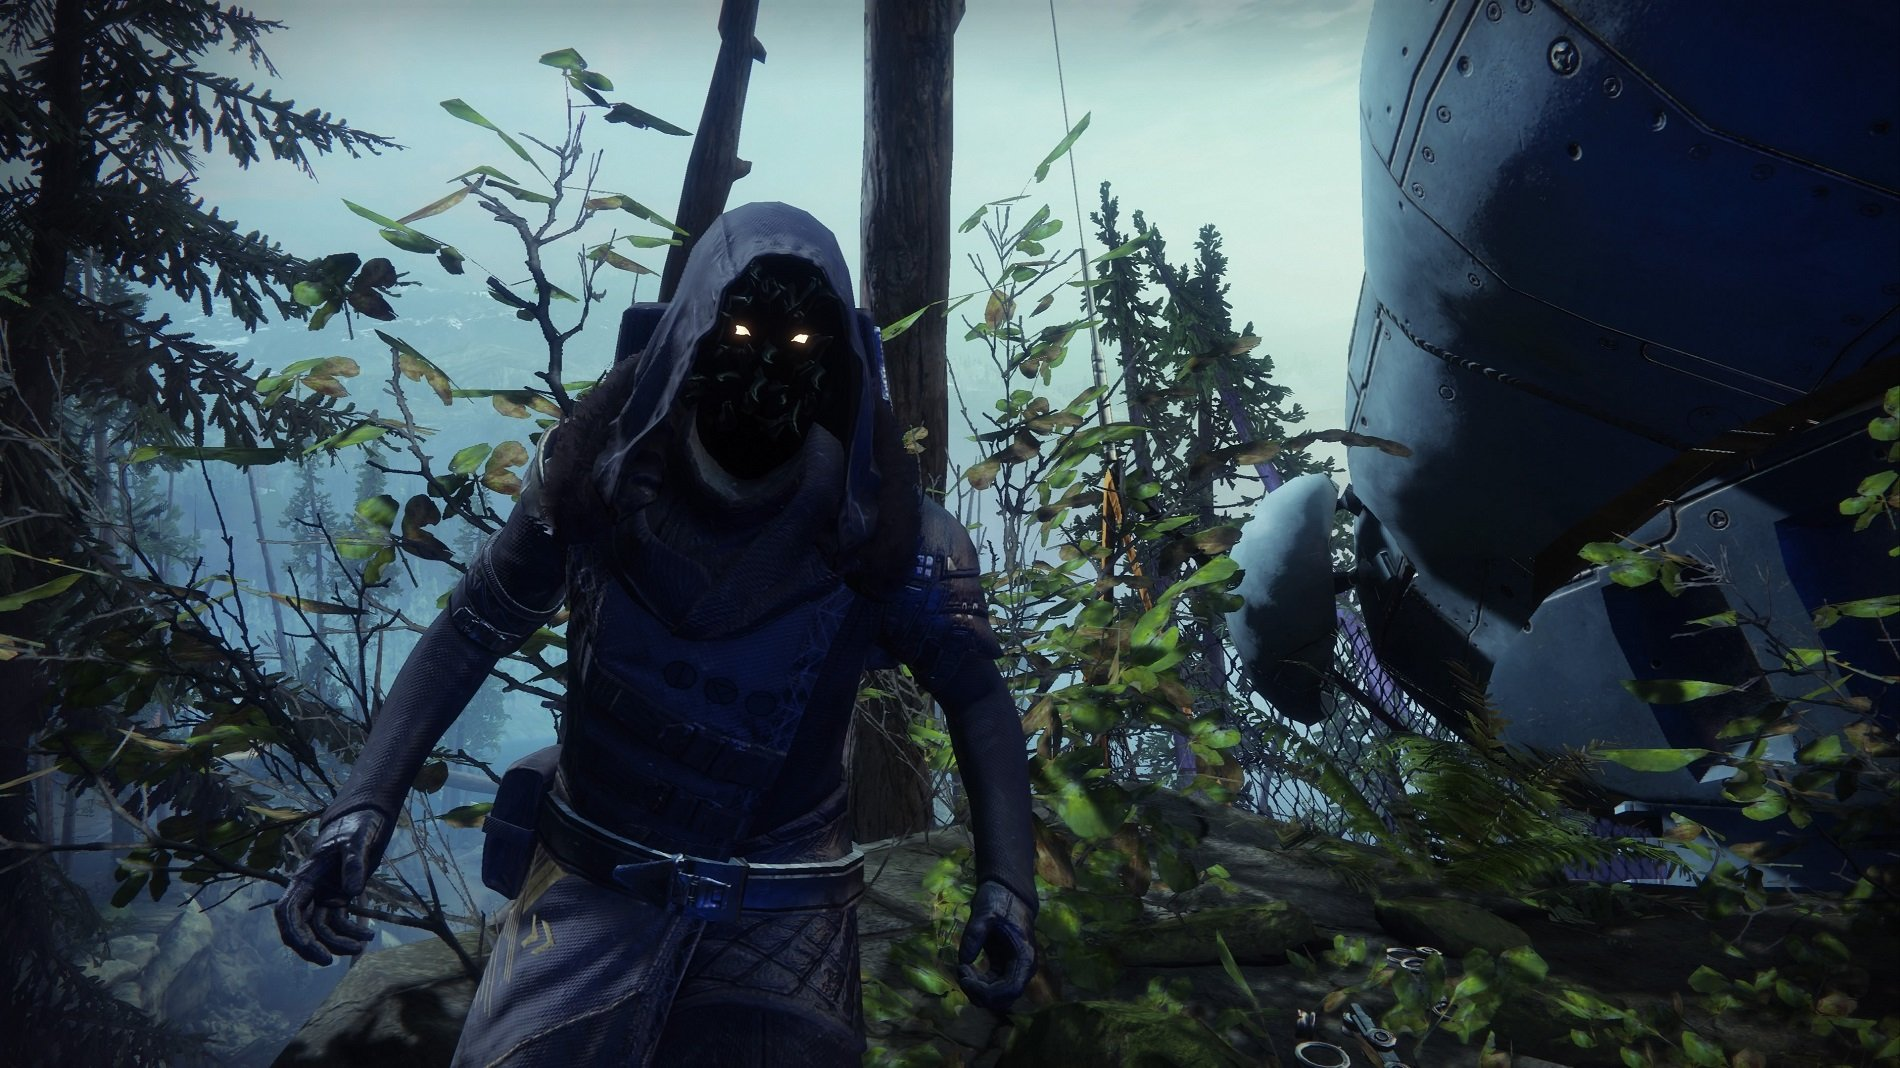 Where to find Xur in Destiny 2 - July 31, 2020